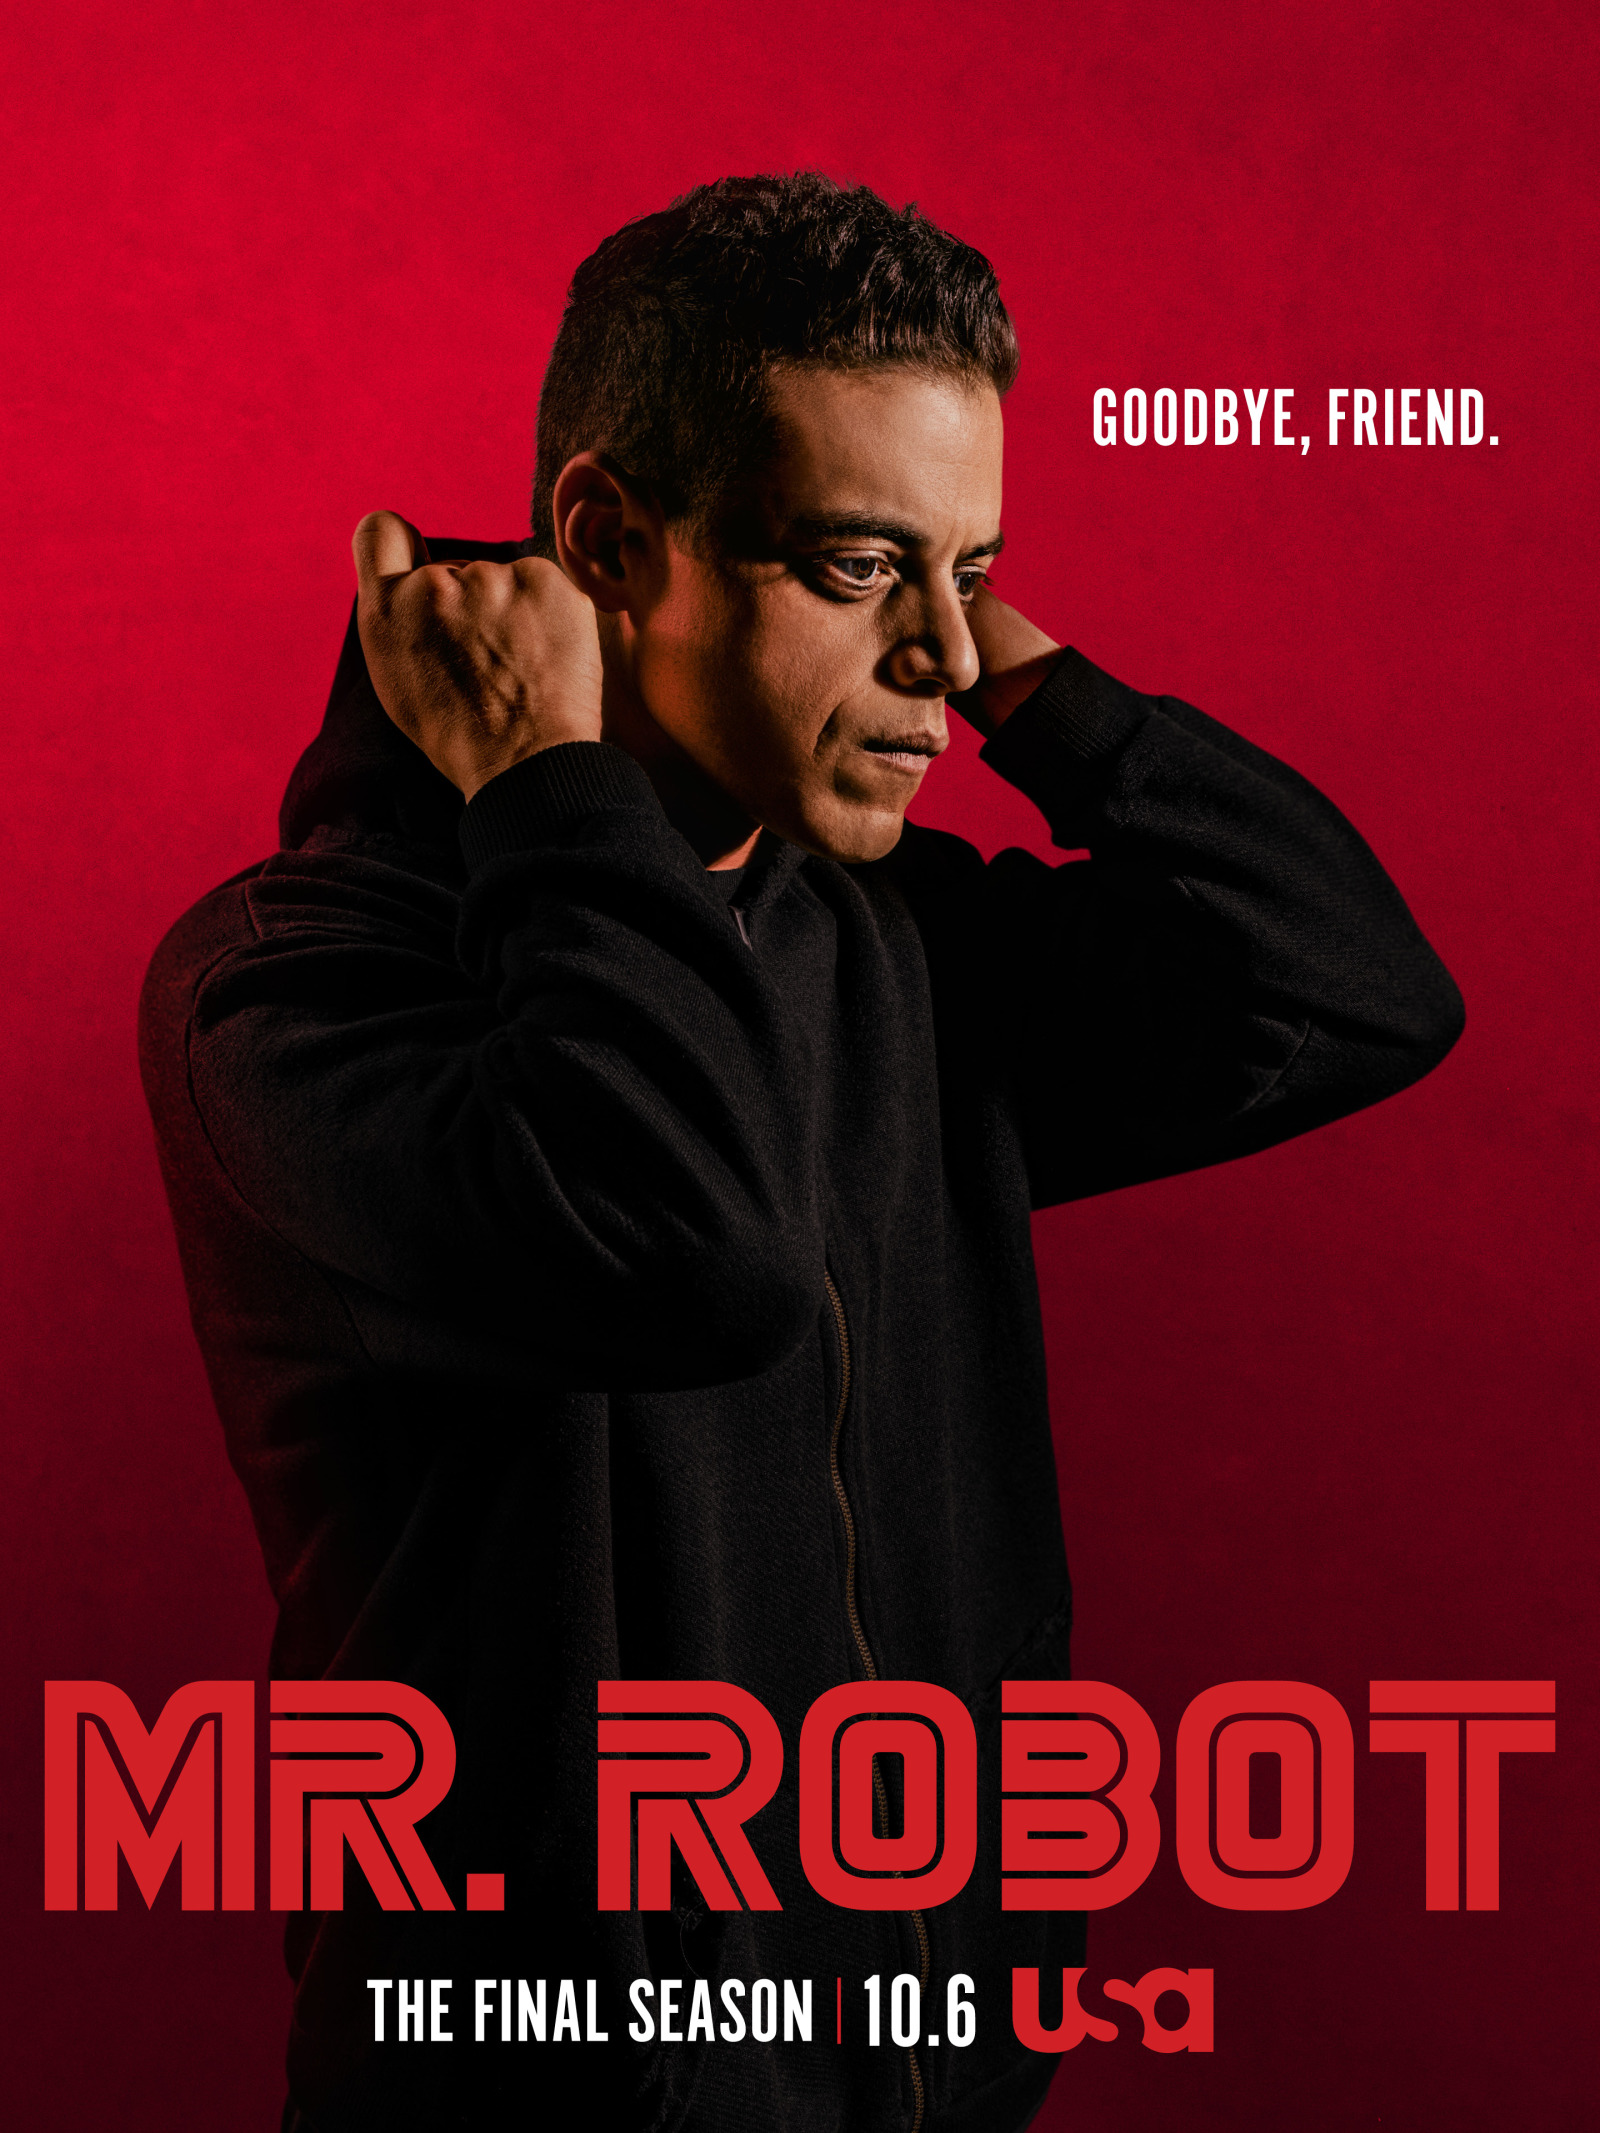 Mr Robot Season 4 Streaming : robot, season, streaming, Robot's, Season, Trailer, Promises, Satisfying, Series